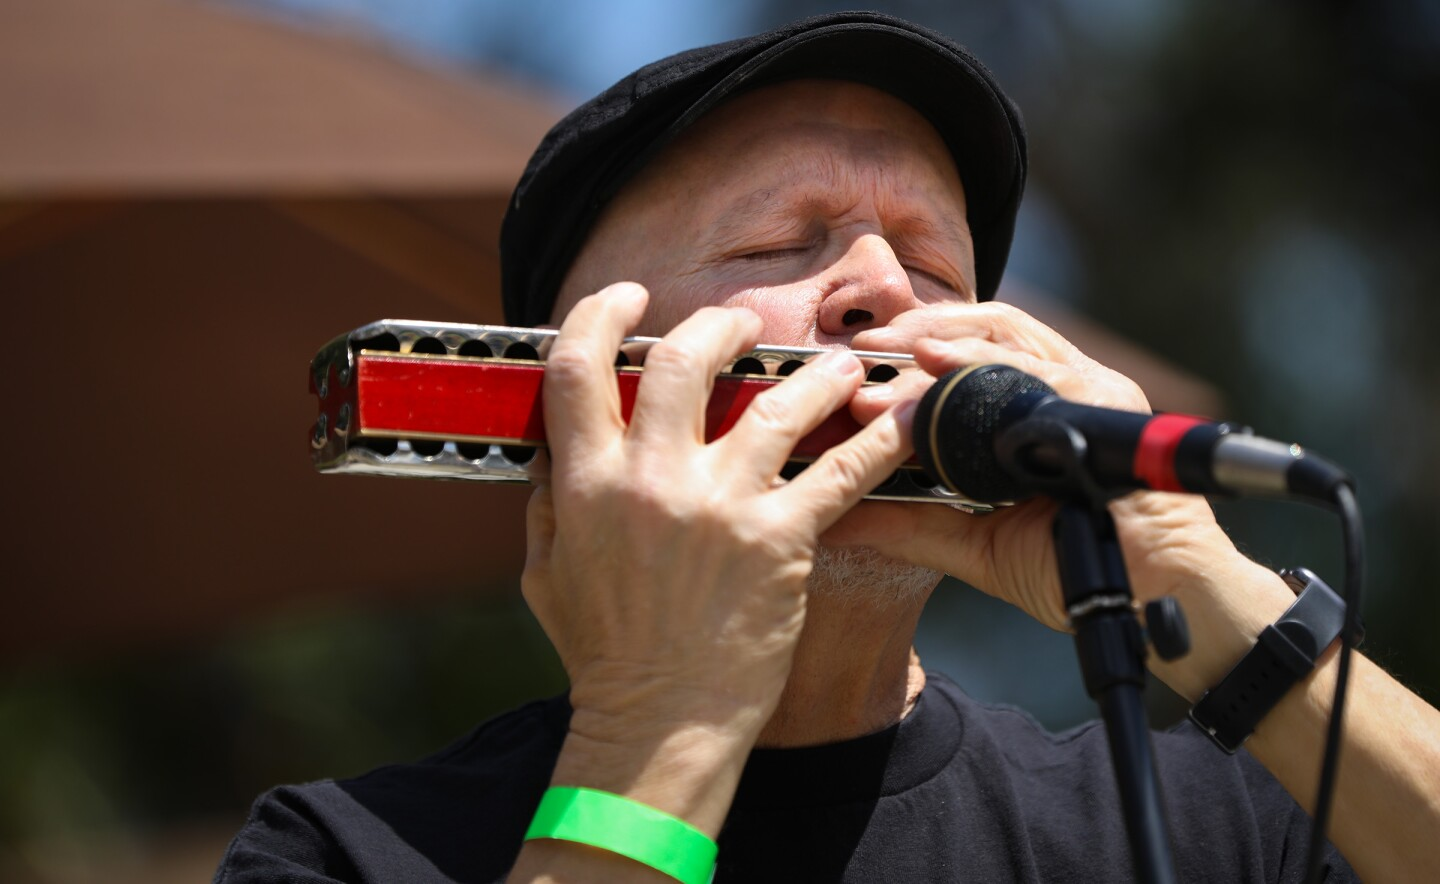 Dane Terry of the group, Plow, performs during the 20th annual Spring Harp Fest in Harry Griffen Park.